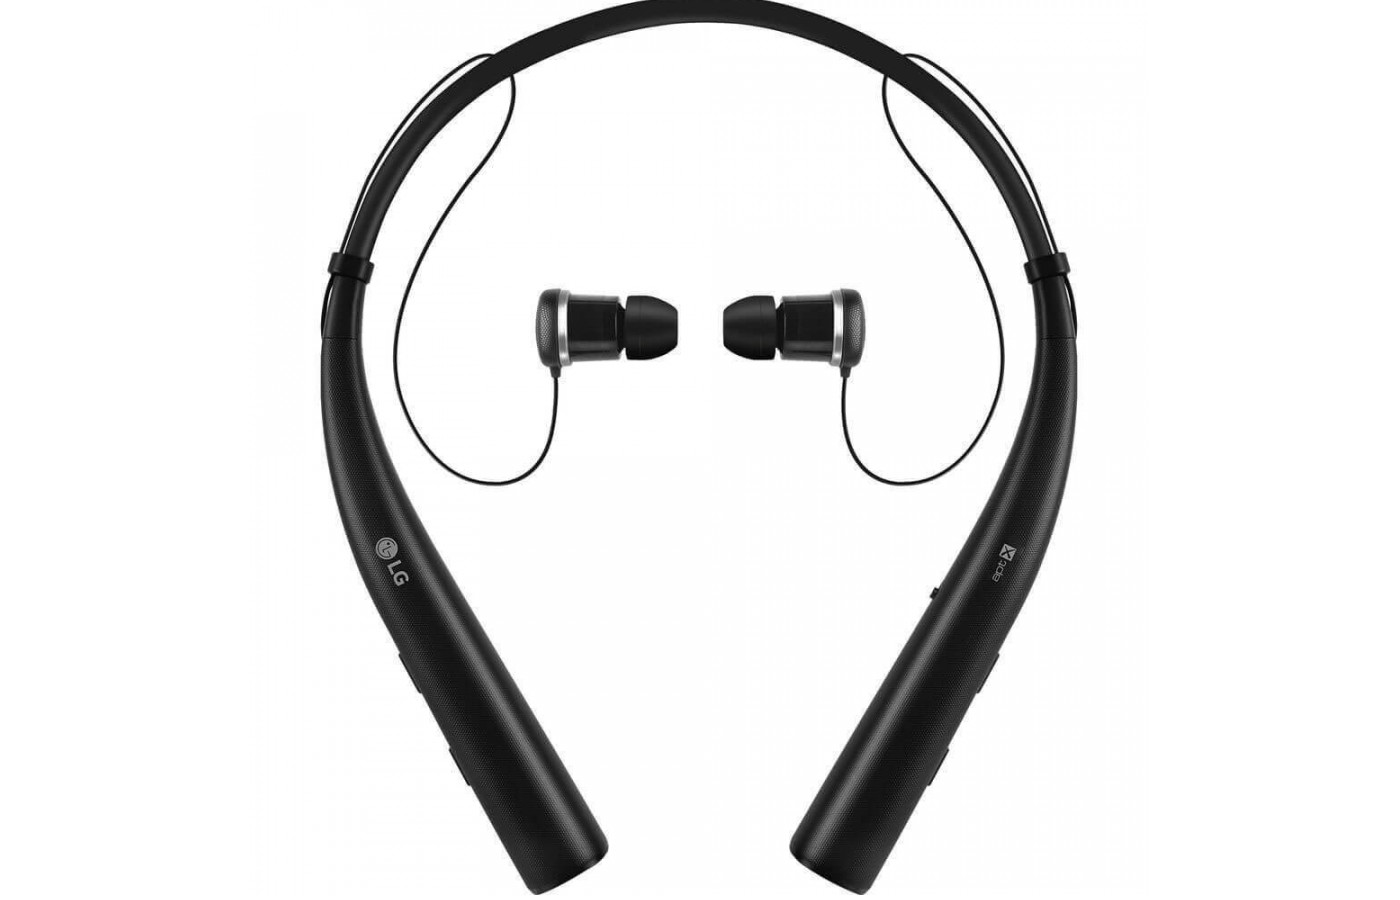 The LG Tone Pro HBS-780 headphones are Bluetooth 4.1 enabled